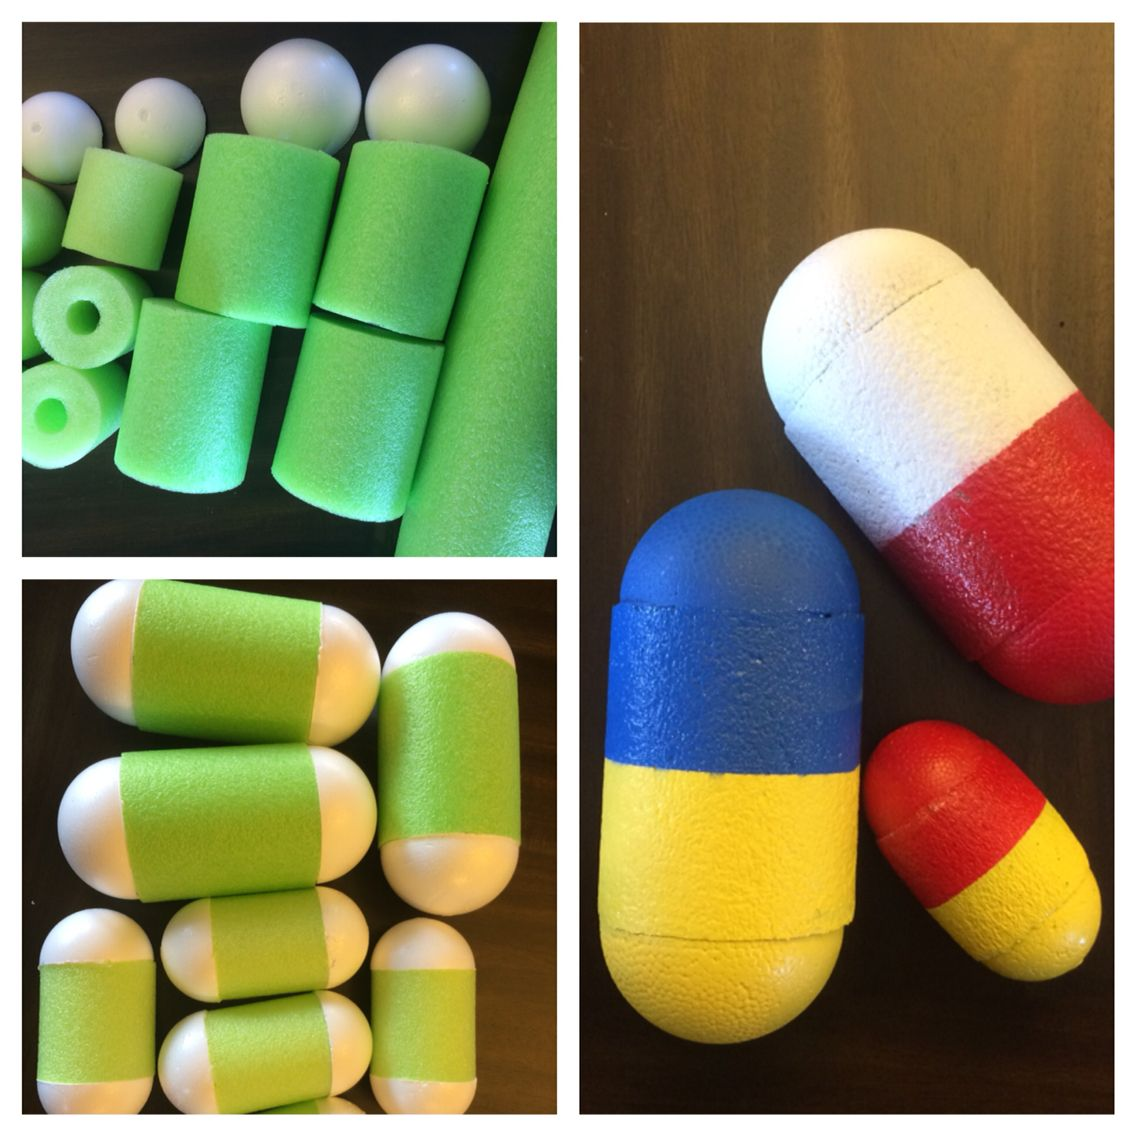 DIY Jumbo, Large Oversized pills for party props/centerpieces! Made